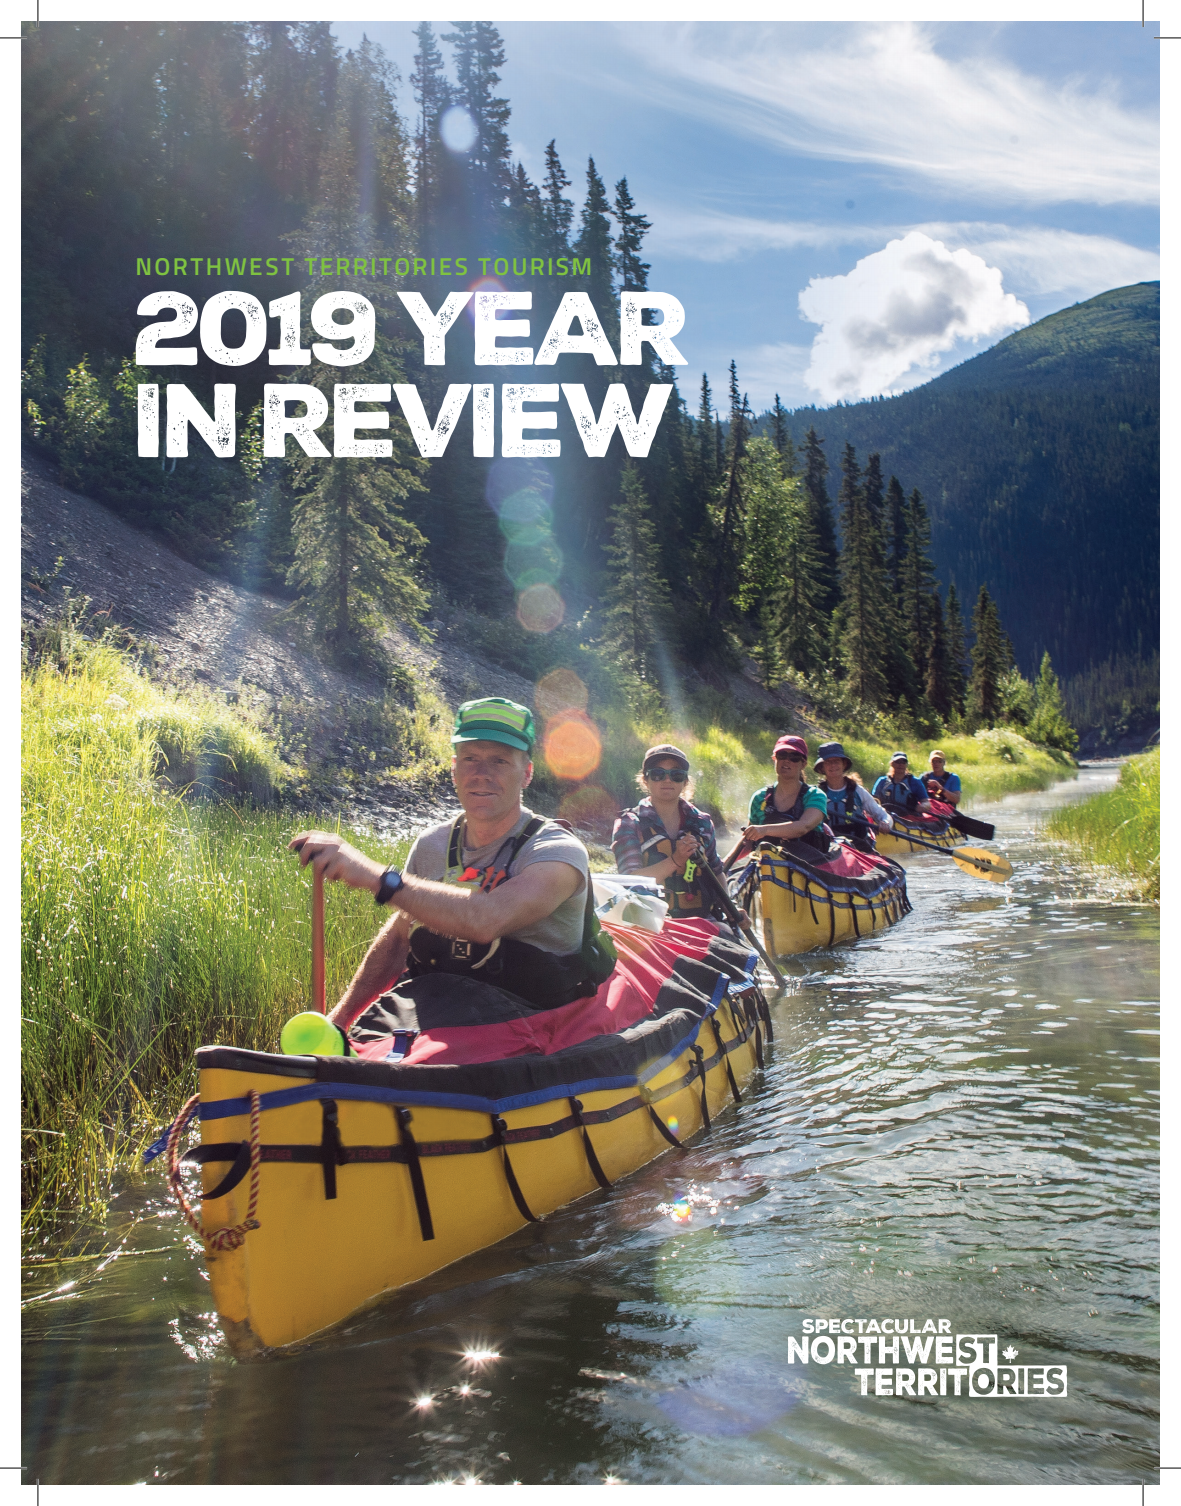 Northwest Territories Tourism 2019 Year in Review cover